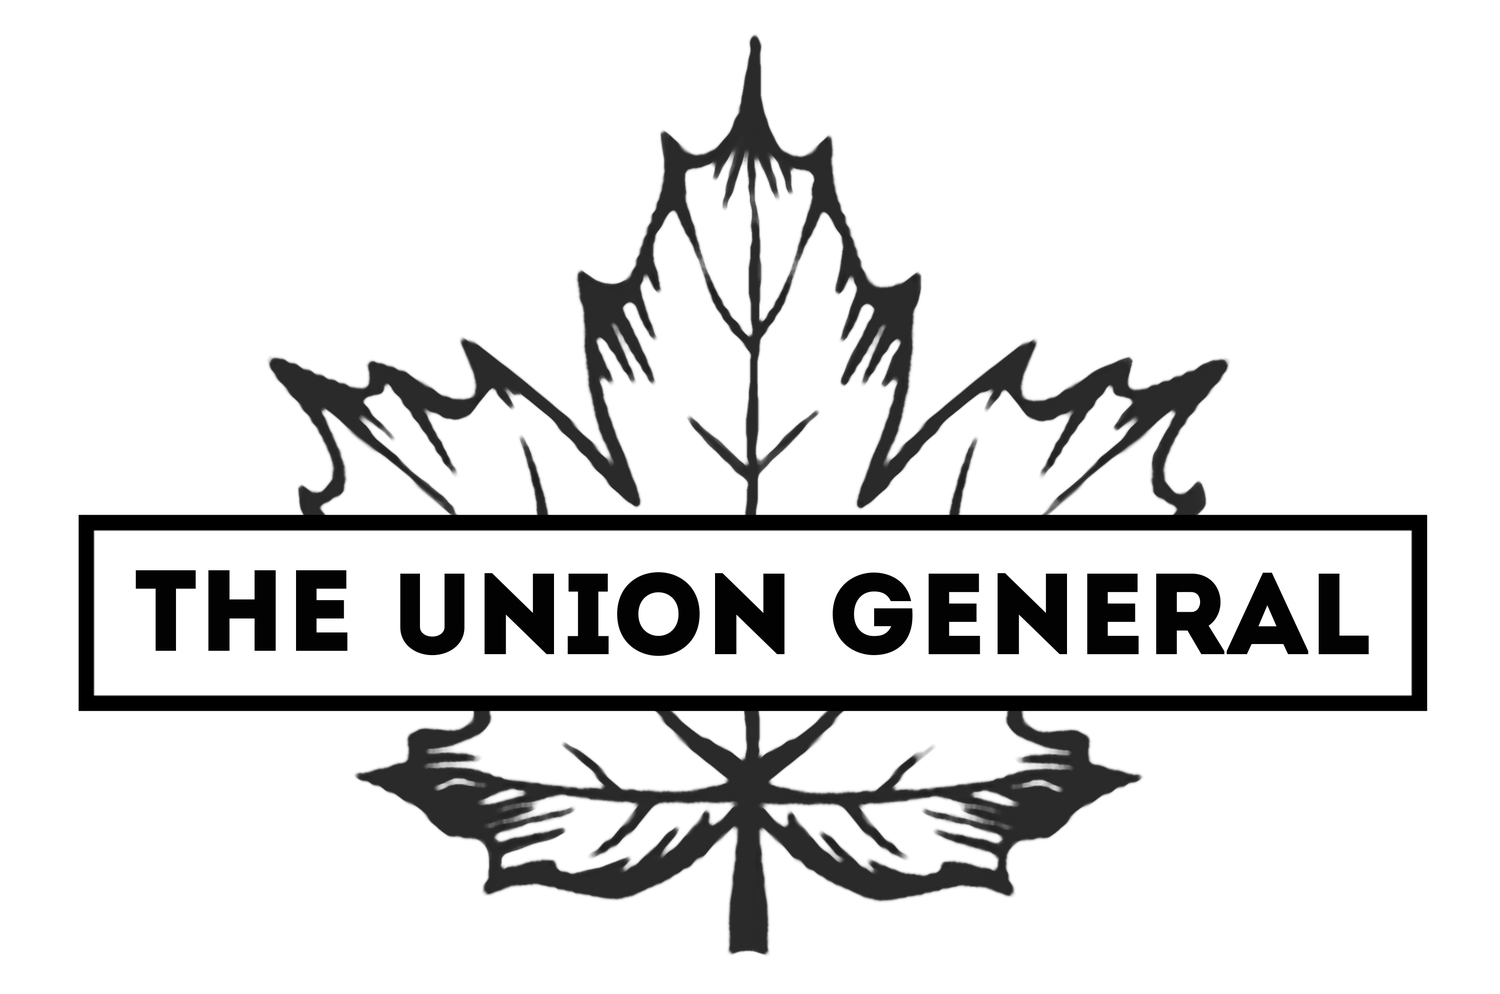 The Union General